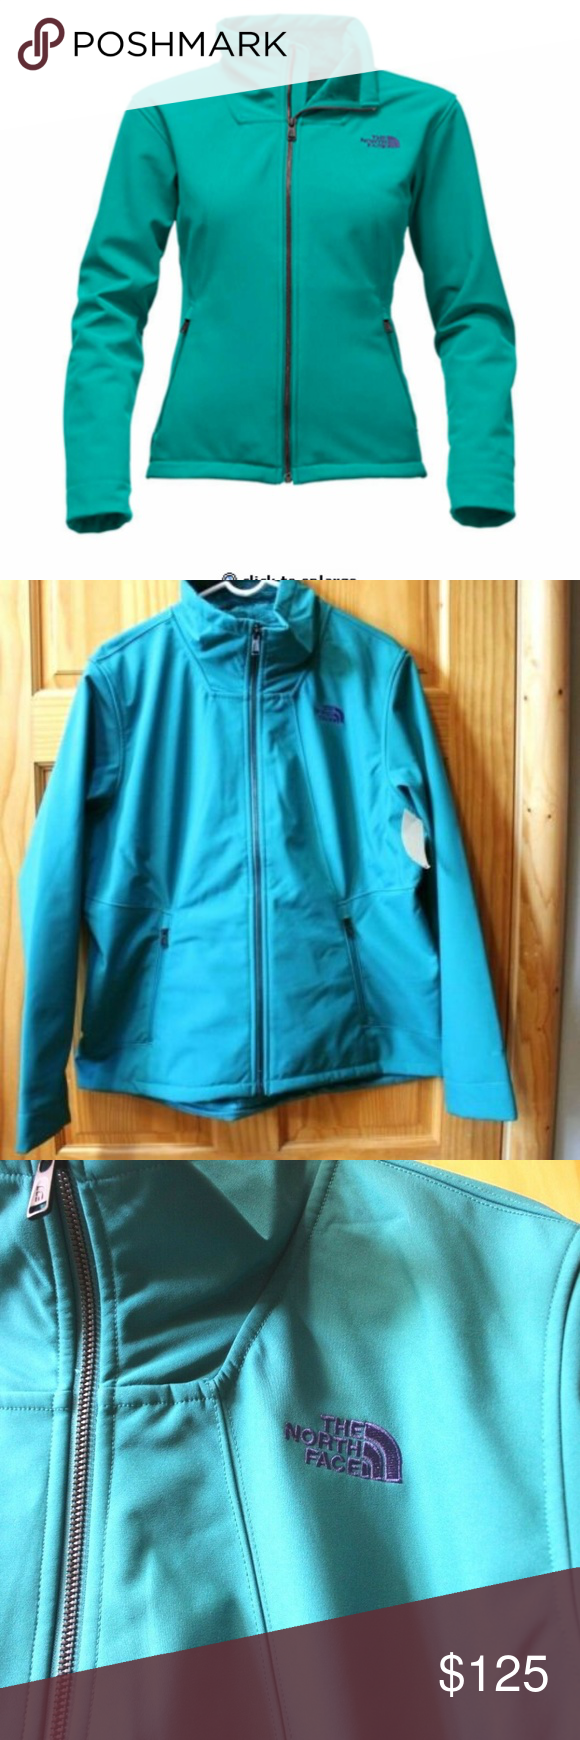 9225f27b6 North Face Apex Chromium Thermal Jacket XLTG NEW North Face Women's ...